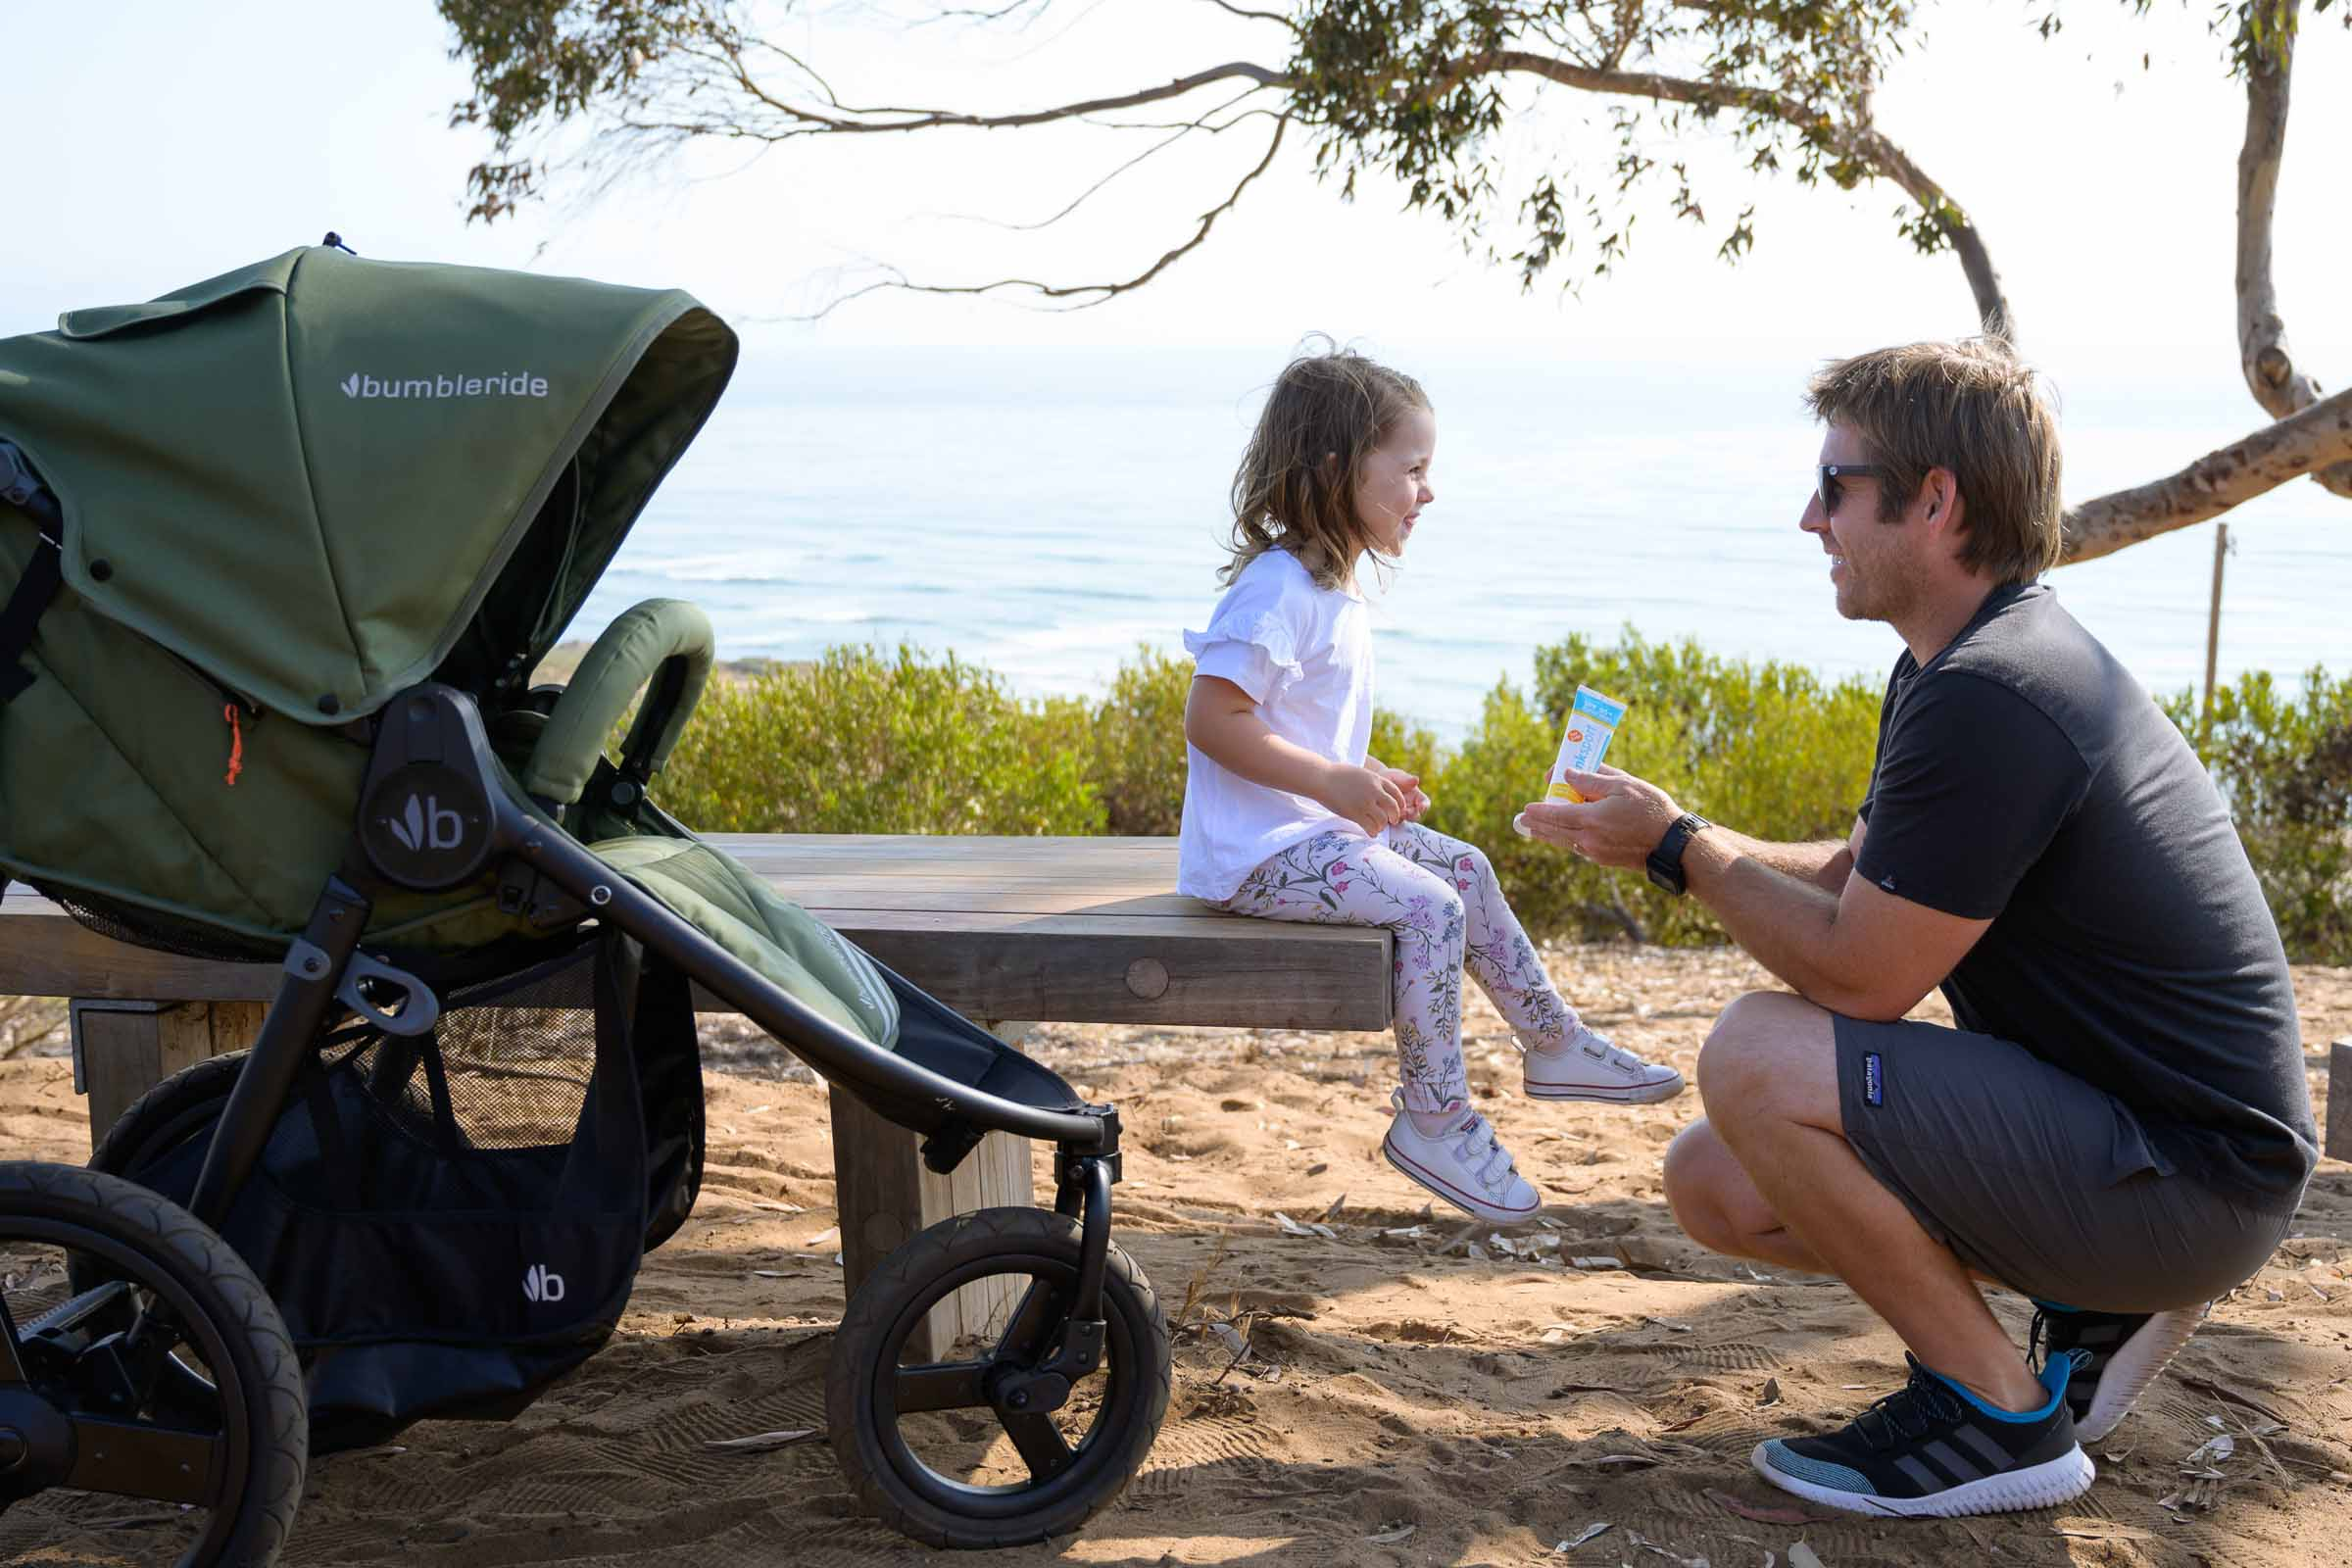 2021 Bumbleride Speed Jogging Stroller on dirt trail off road